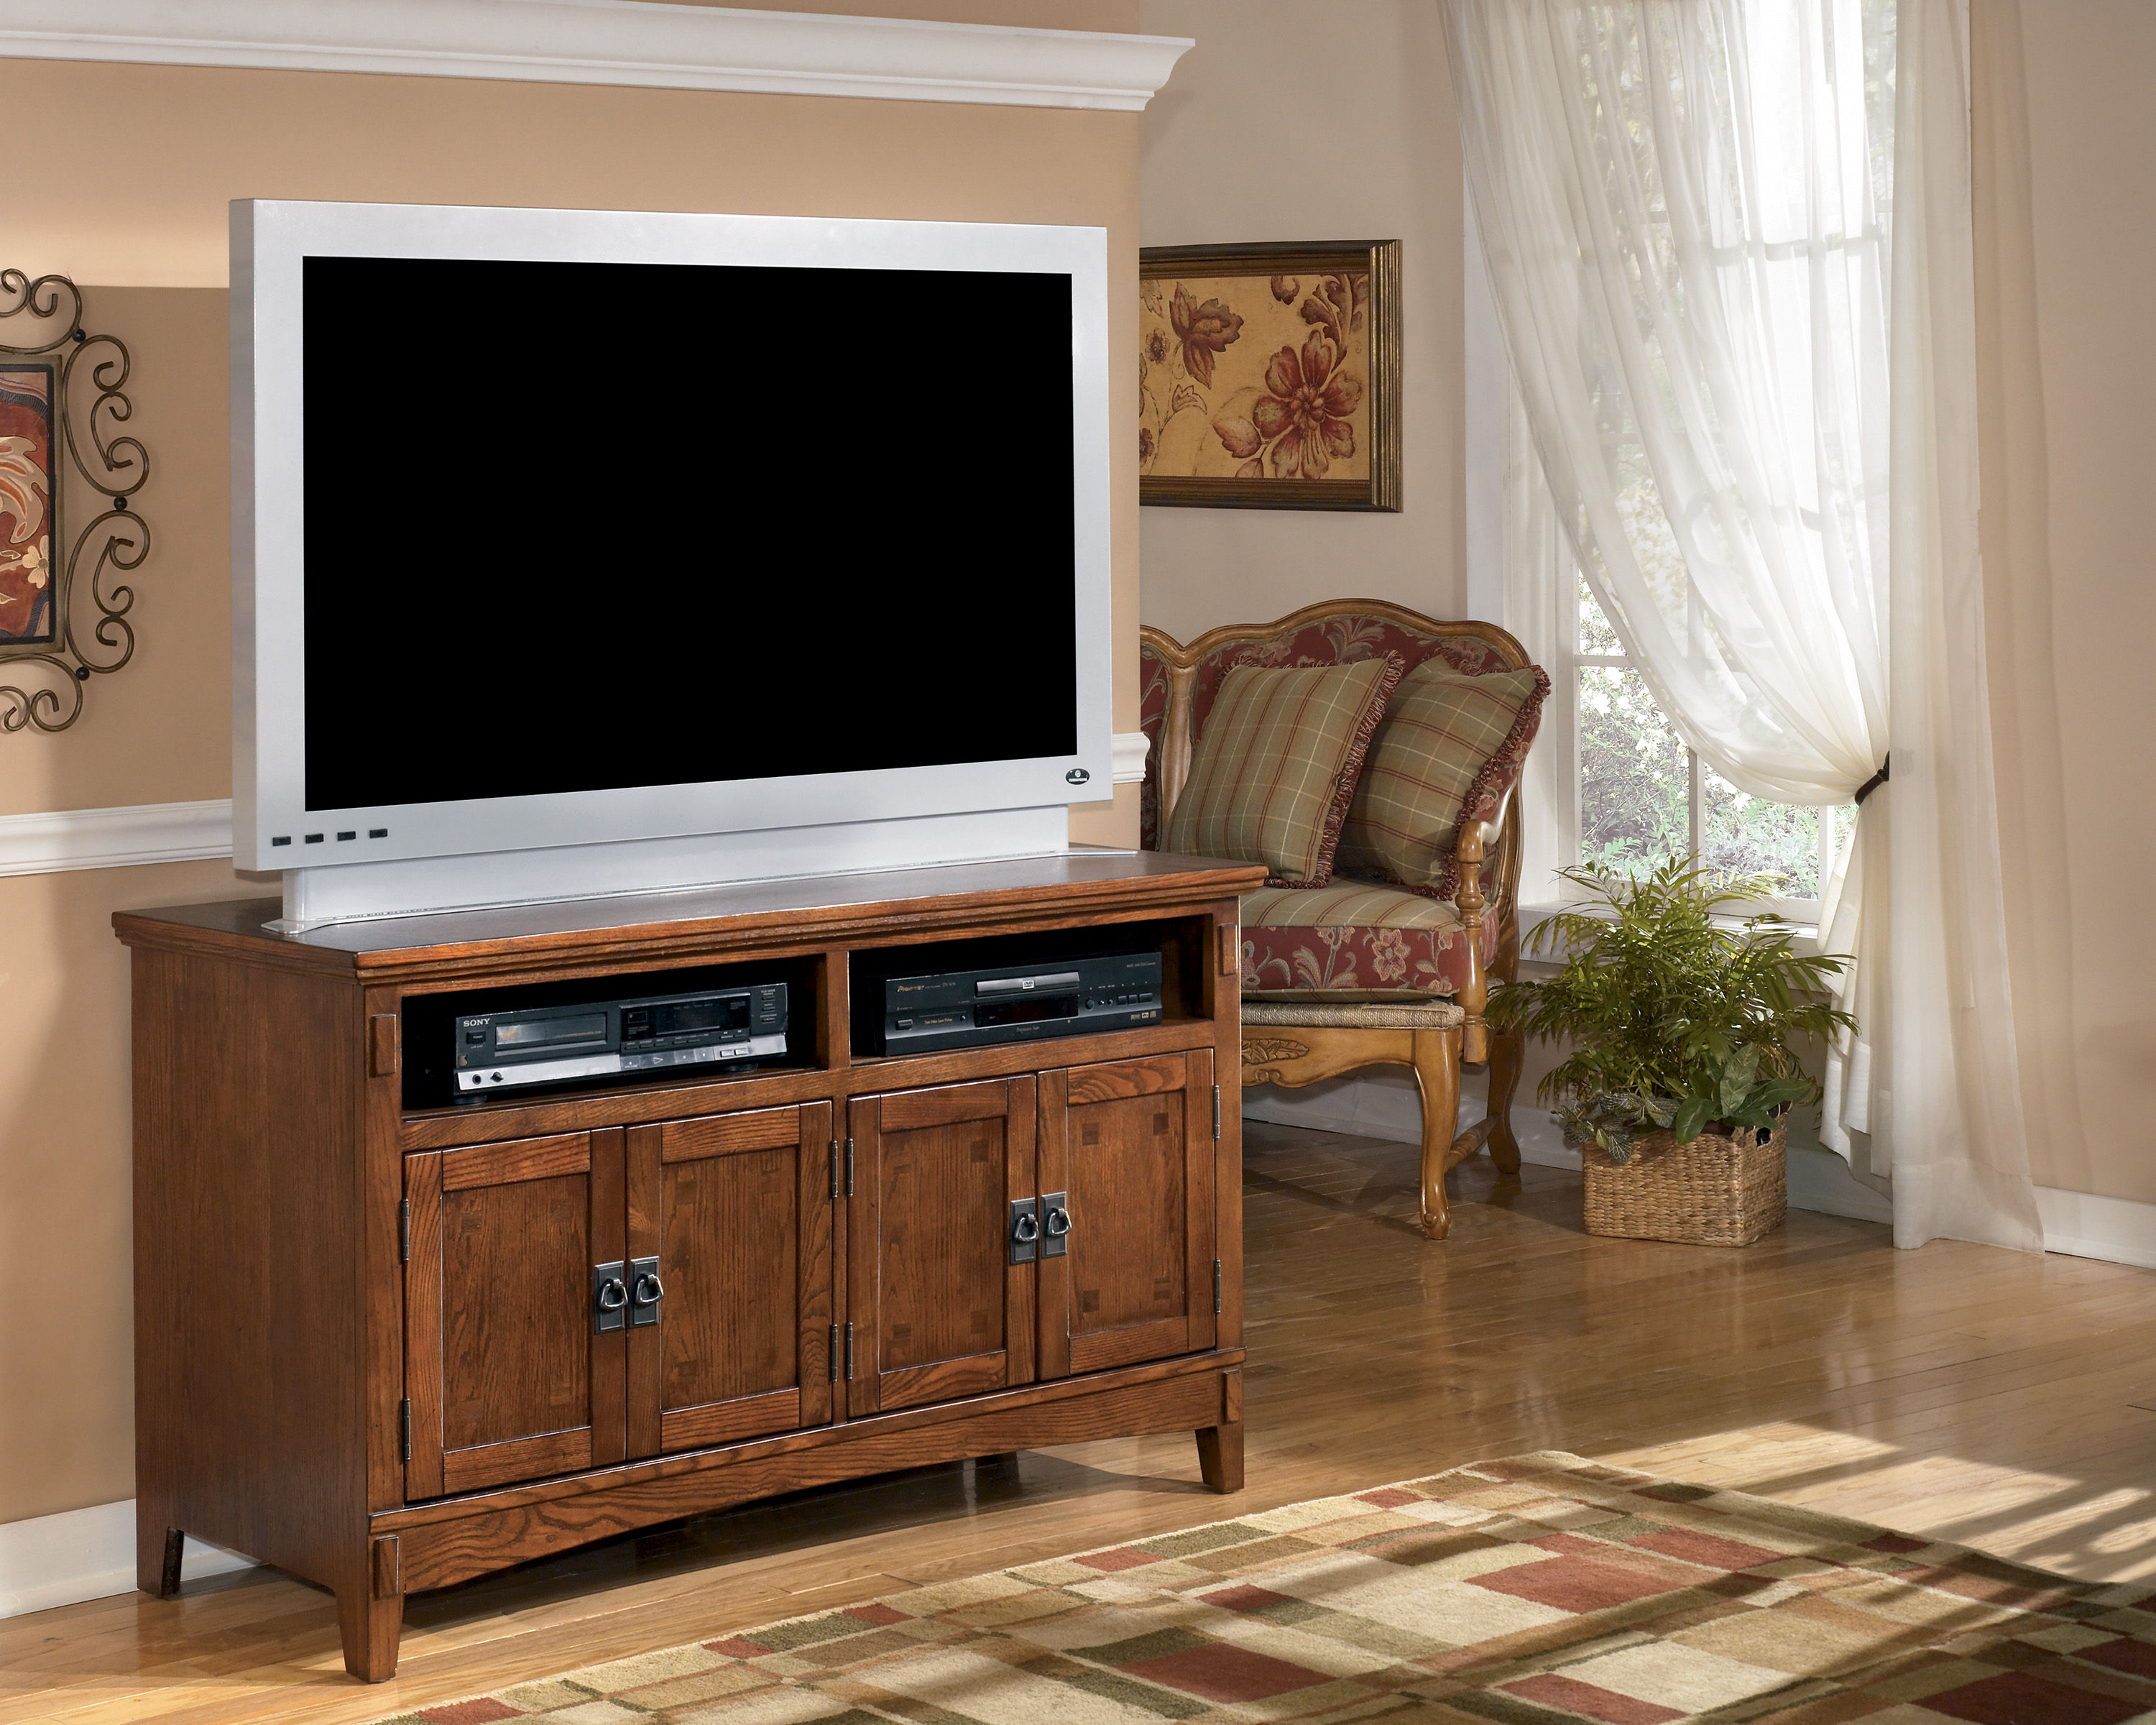 Ashley Furniture Cross Island Oak Stained 50 Inch Tv Stand The